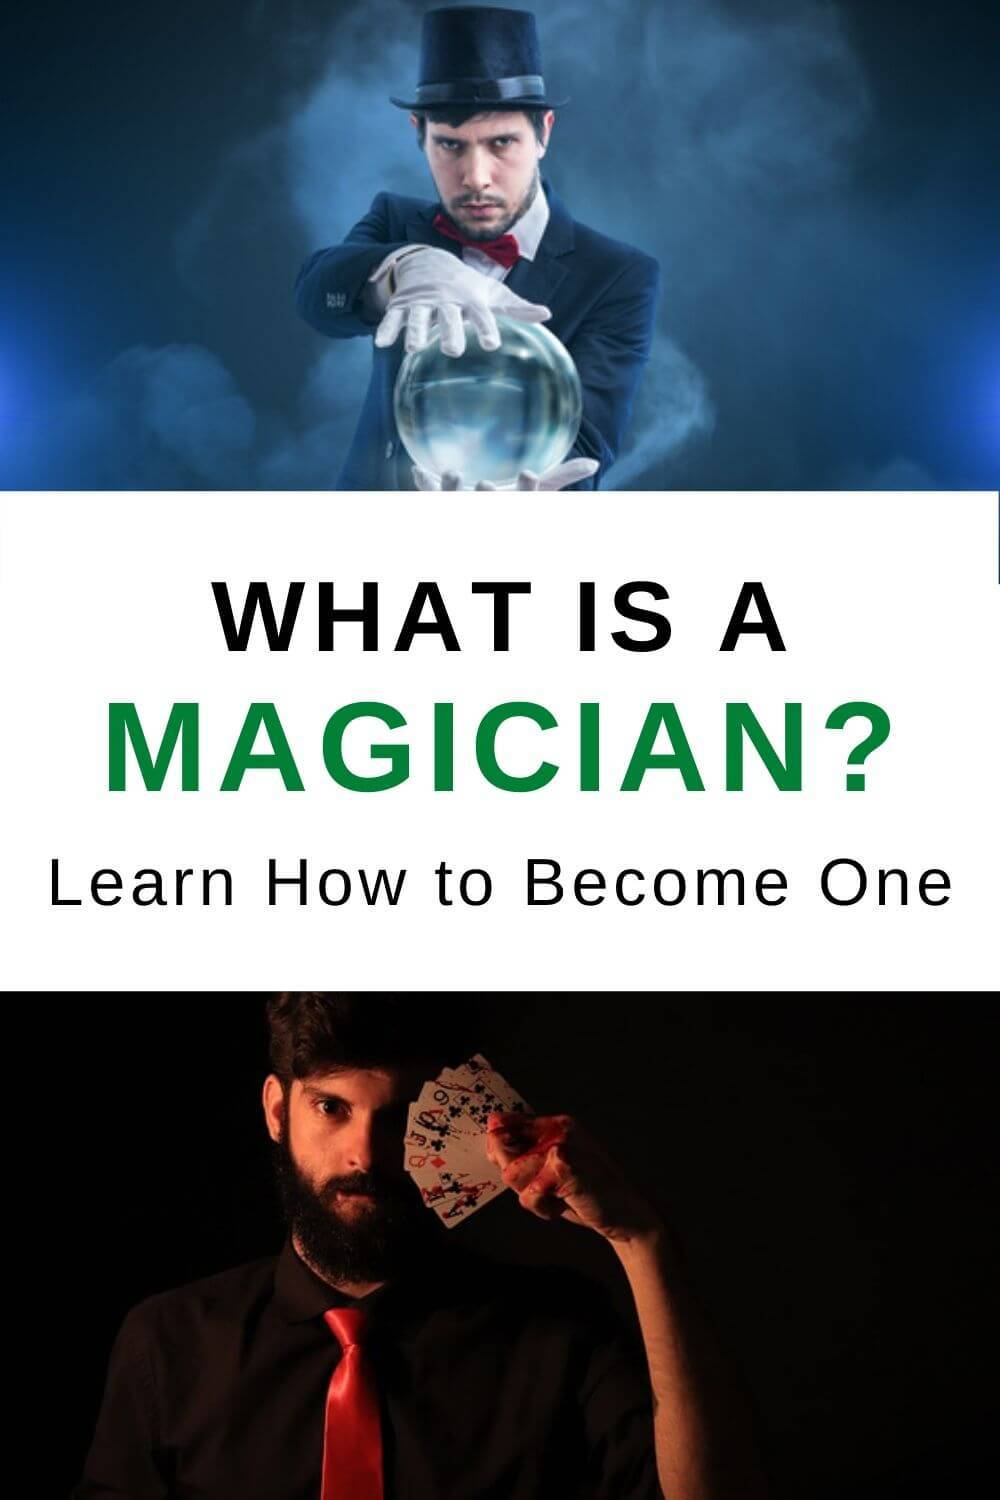 What is a magician? Learn to become one